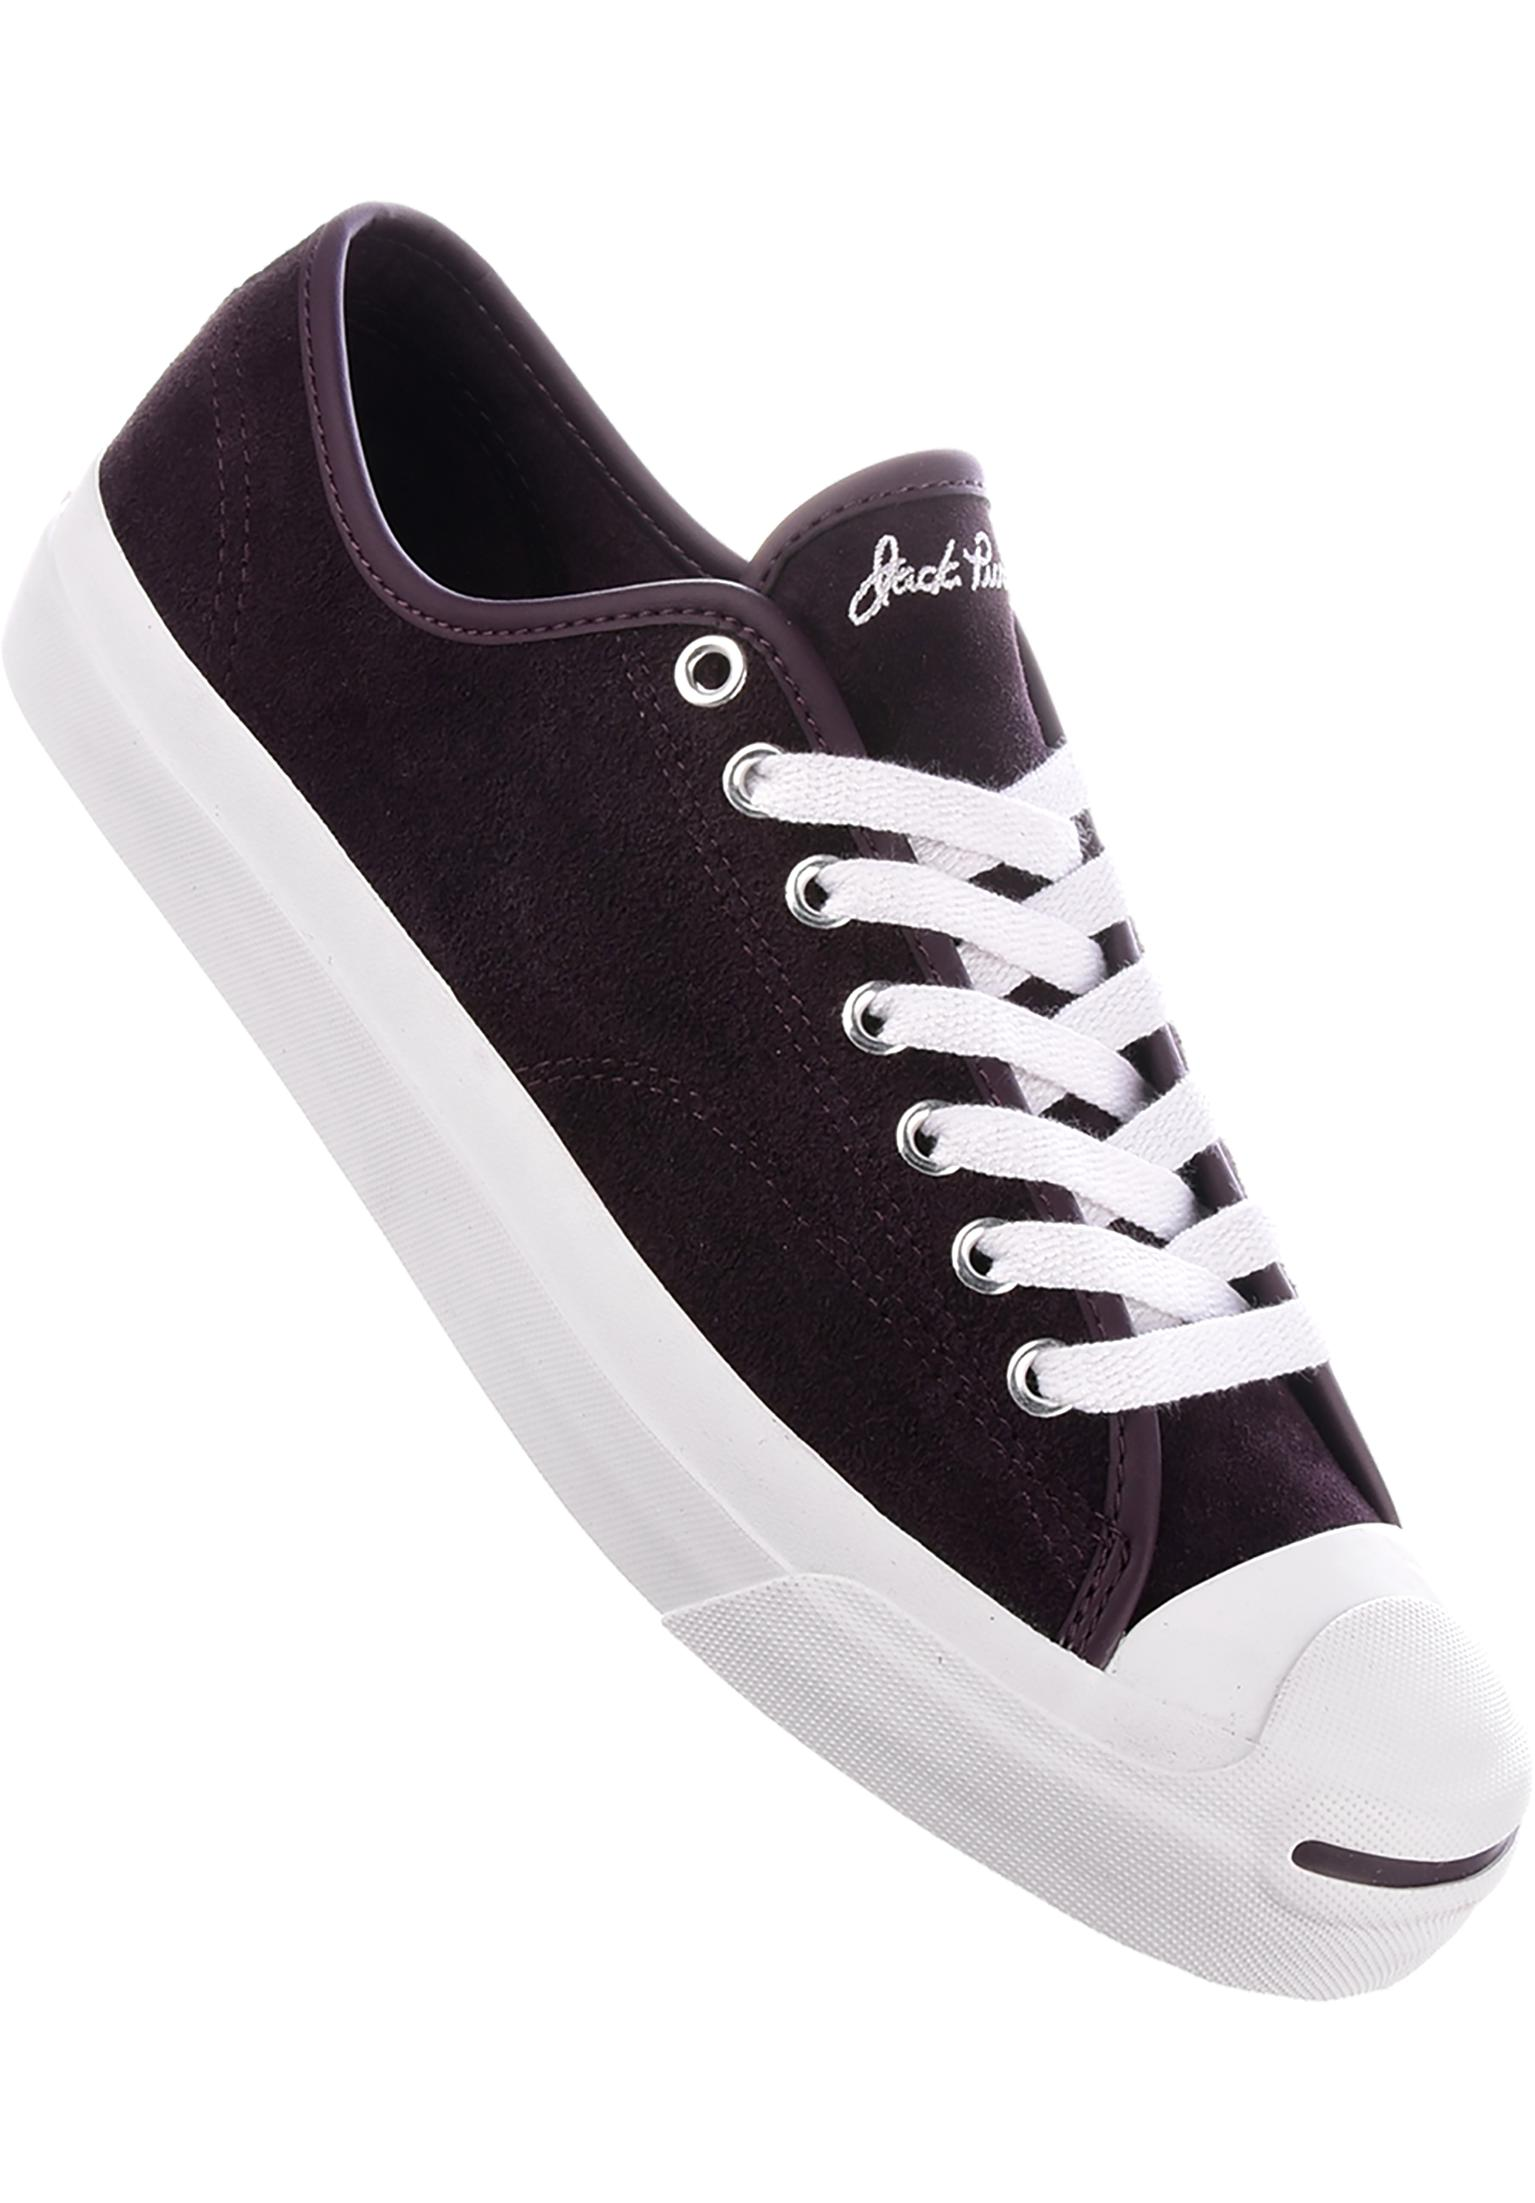 8283fabda135de Jack Purcell Pro Ox Converse CONS All Shoes in blackcherry-white for Men